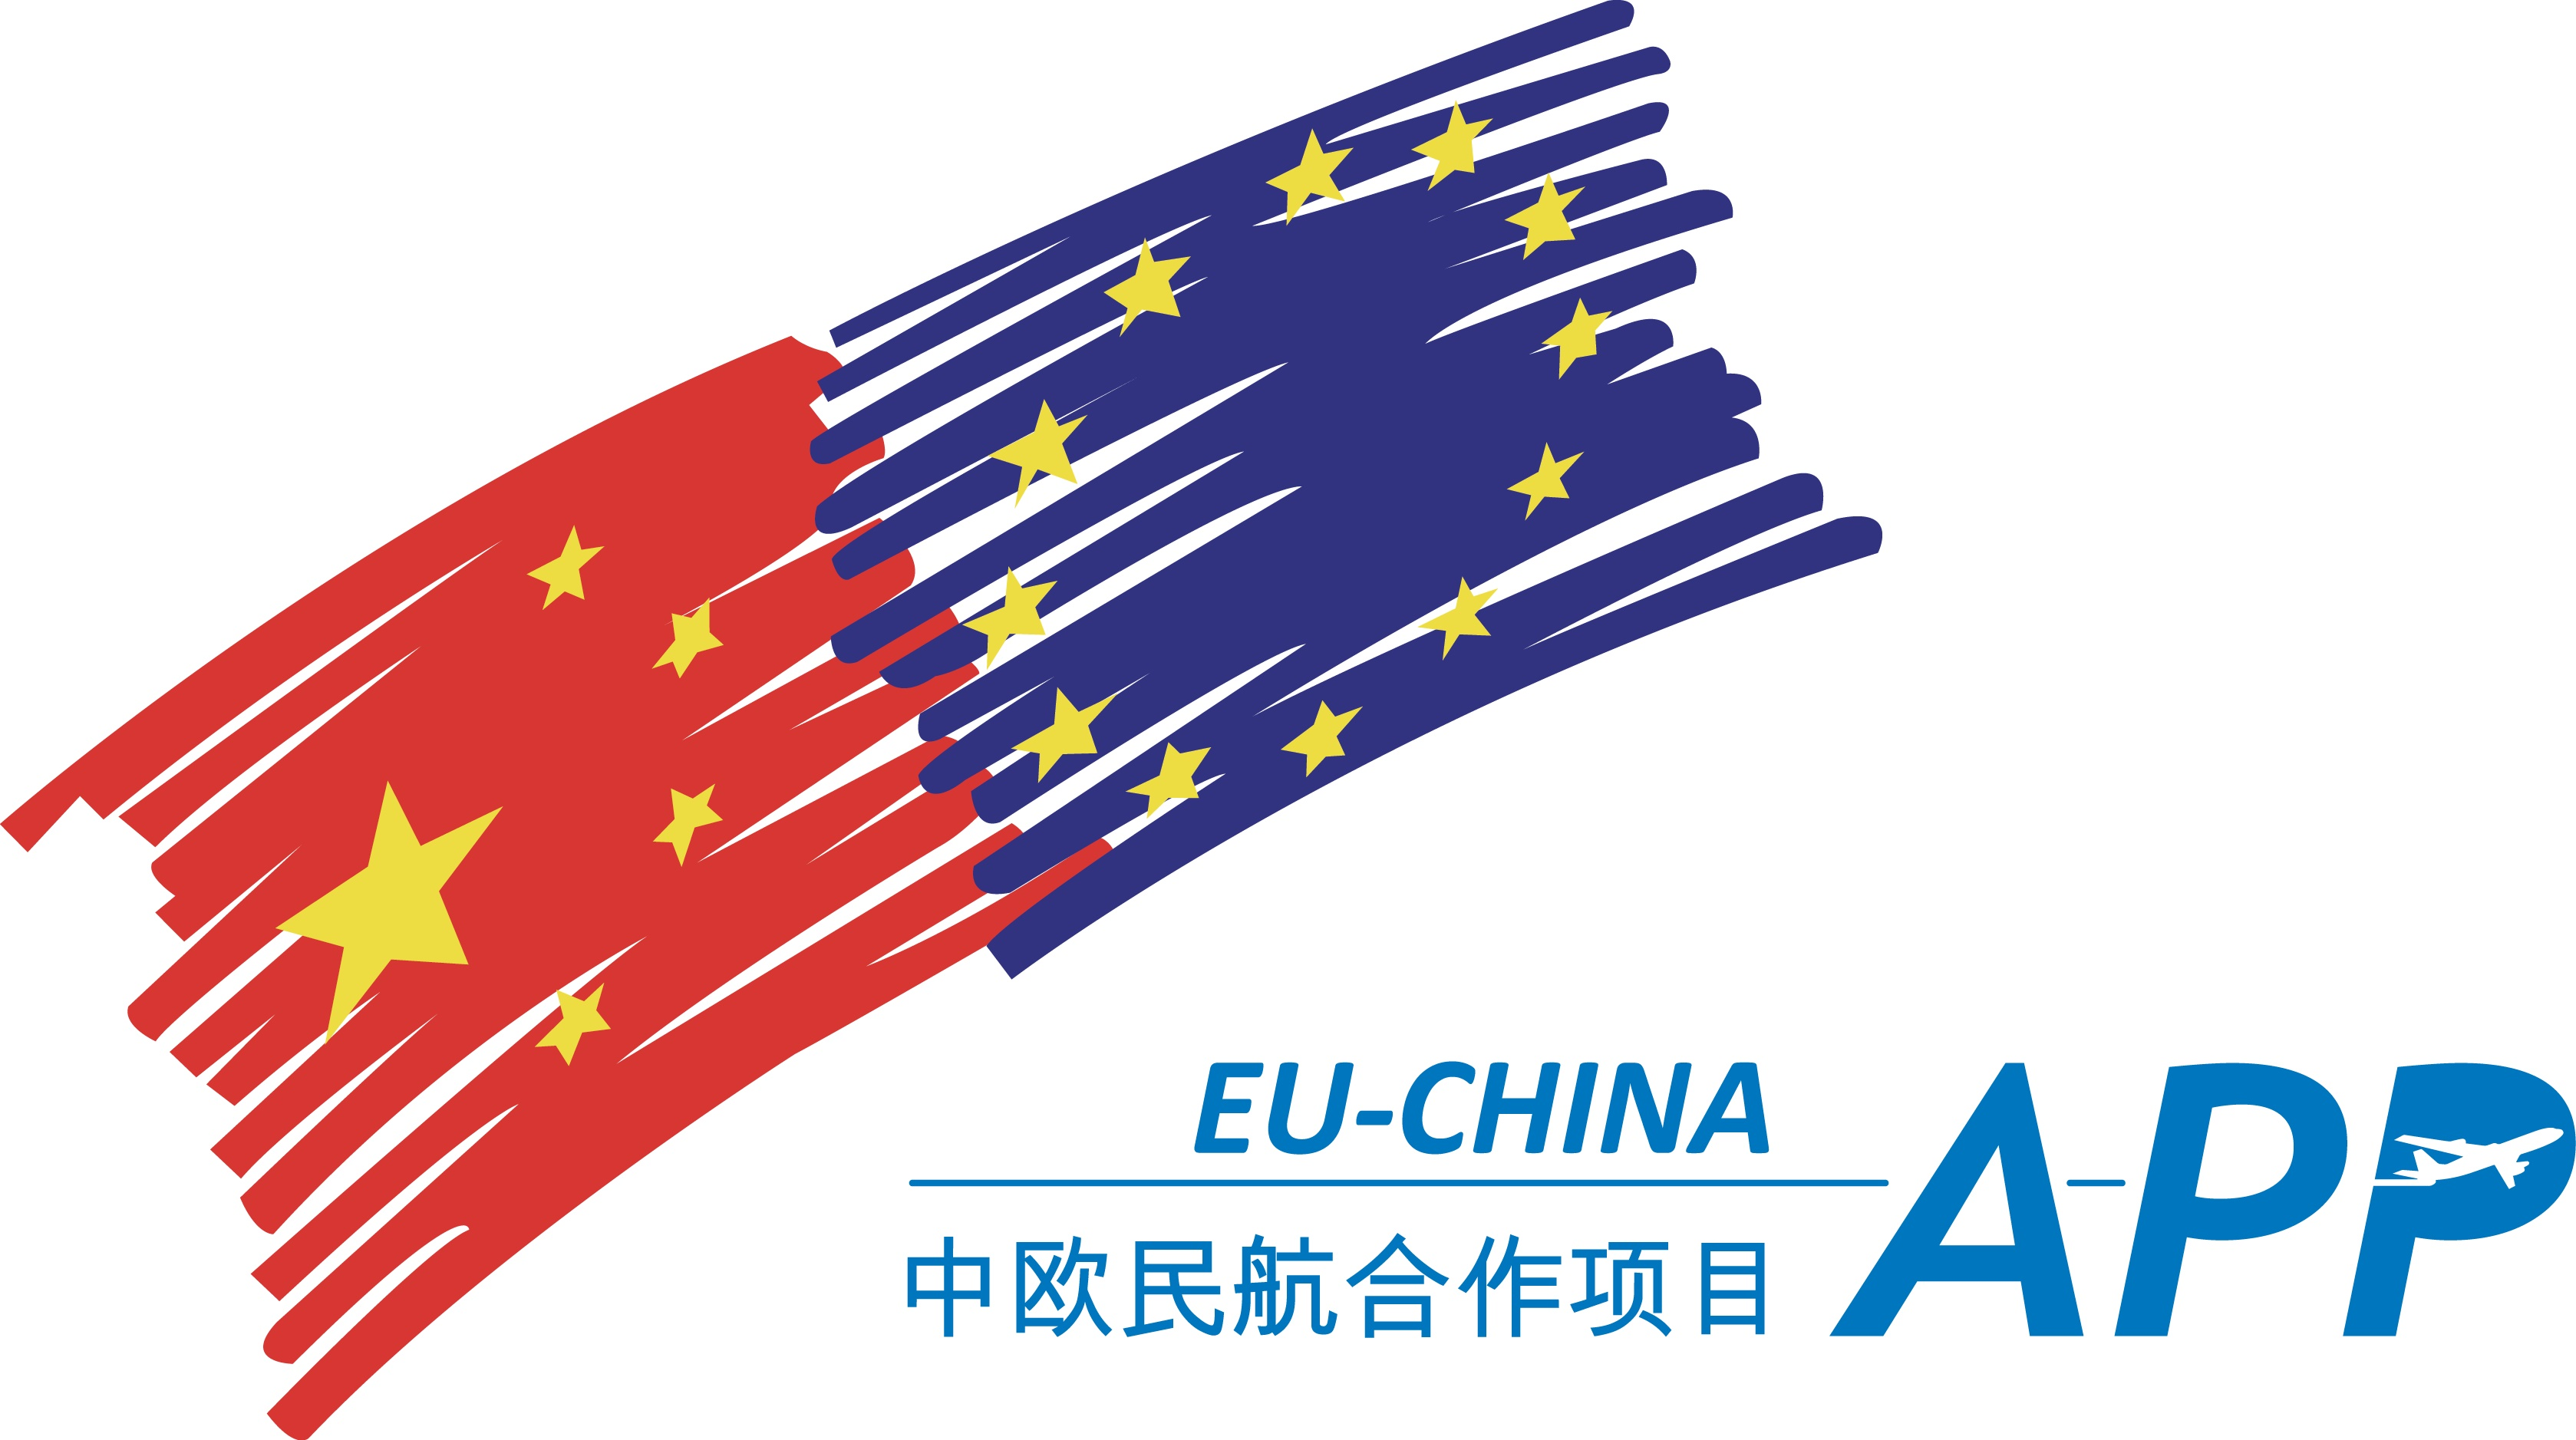 The EU-China Aviation Partnership Project (APP)